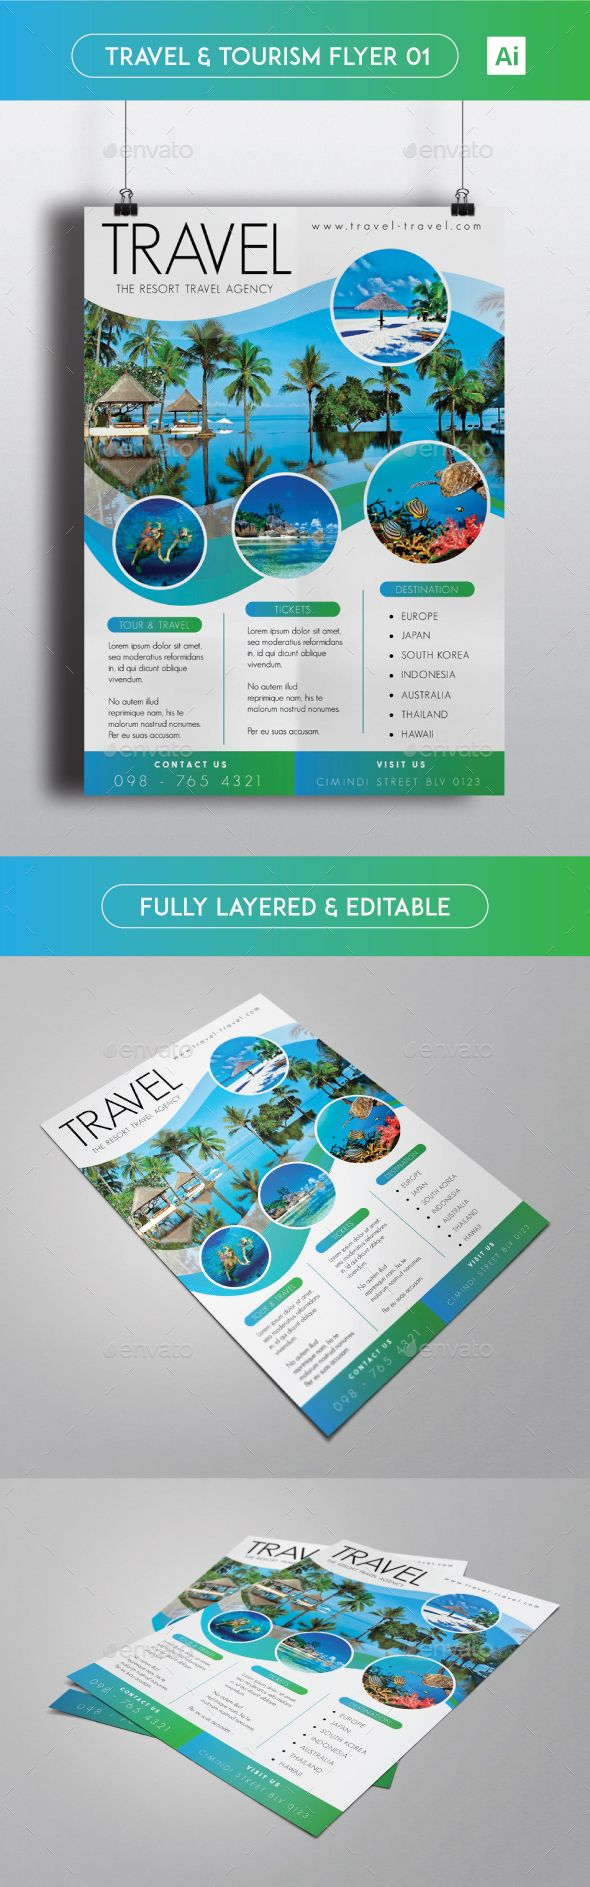 illustrator flyer templates